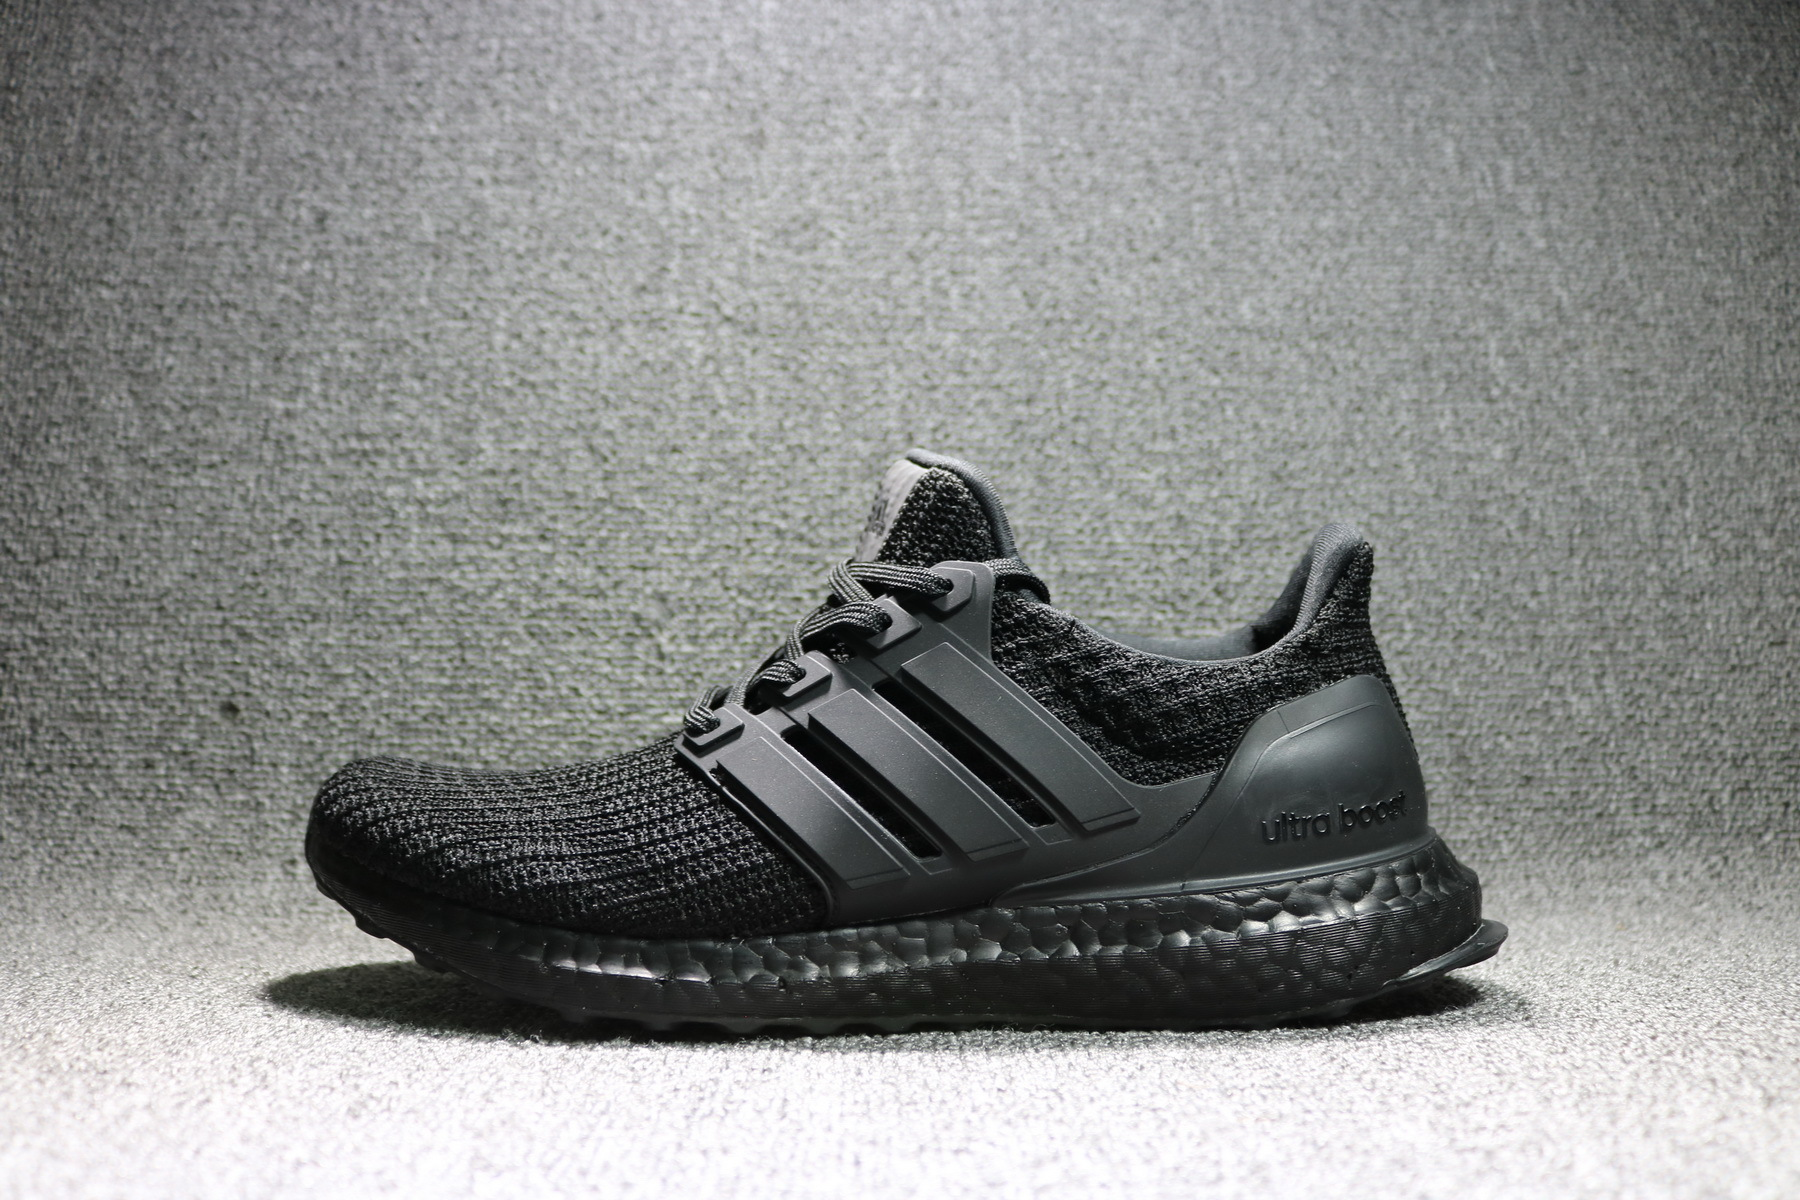 4f4c72d9e0ab5 ... adidas-Ultra-Boost-4.0-Triple-Black-For-Sale-